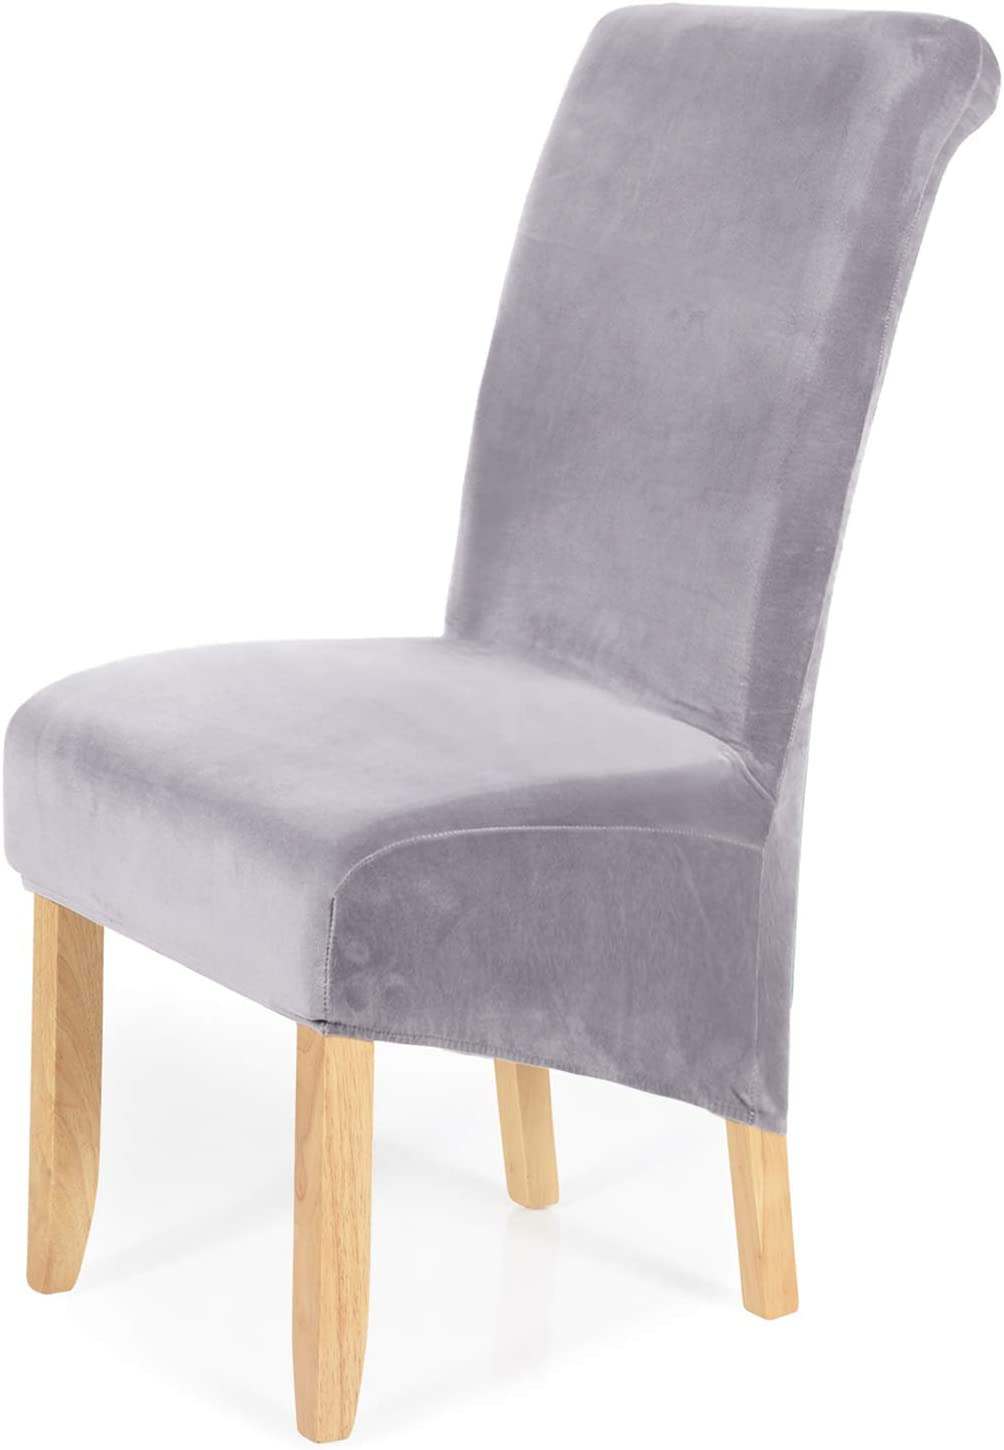 smiry Stretch Velvet Dining Selling 5 popular and selling Chair Covers Washable Lar Removable